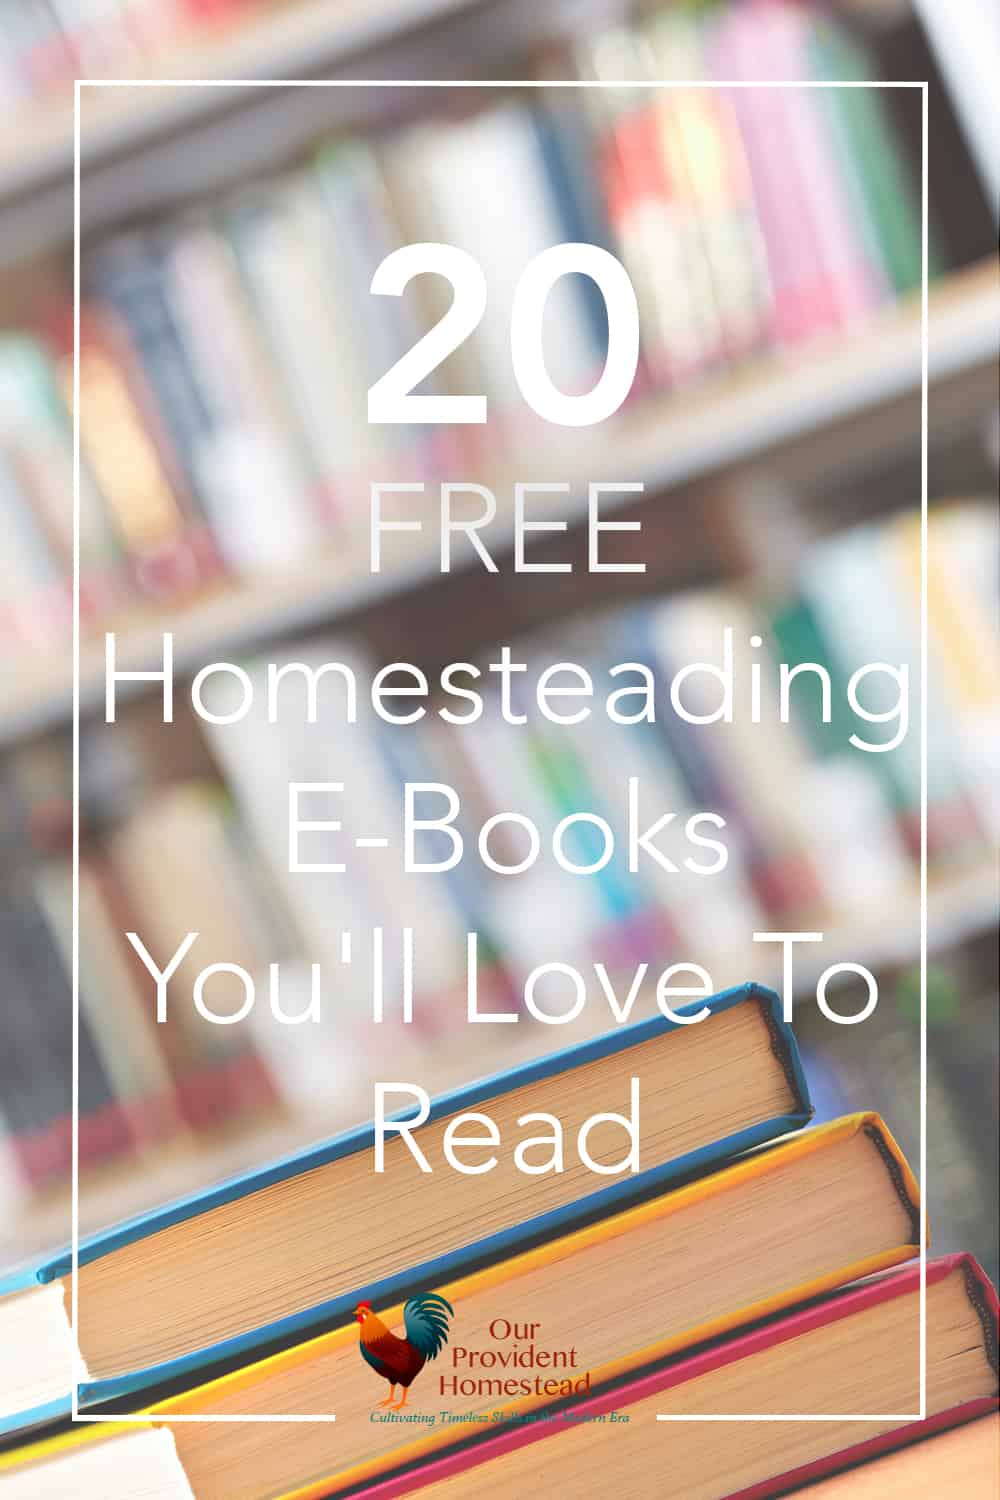 Free is good, right? Click here to 20 free homesteading e-books you'll love and get started on your homesteading dream today. Free Homesteading E-Books | Homesteading Resources | Free E-Books List